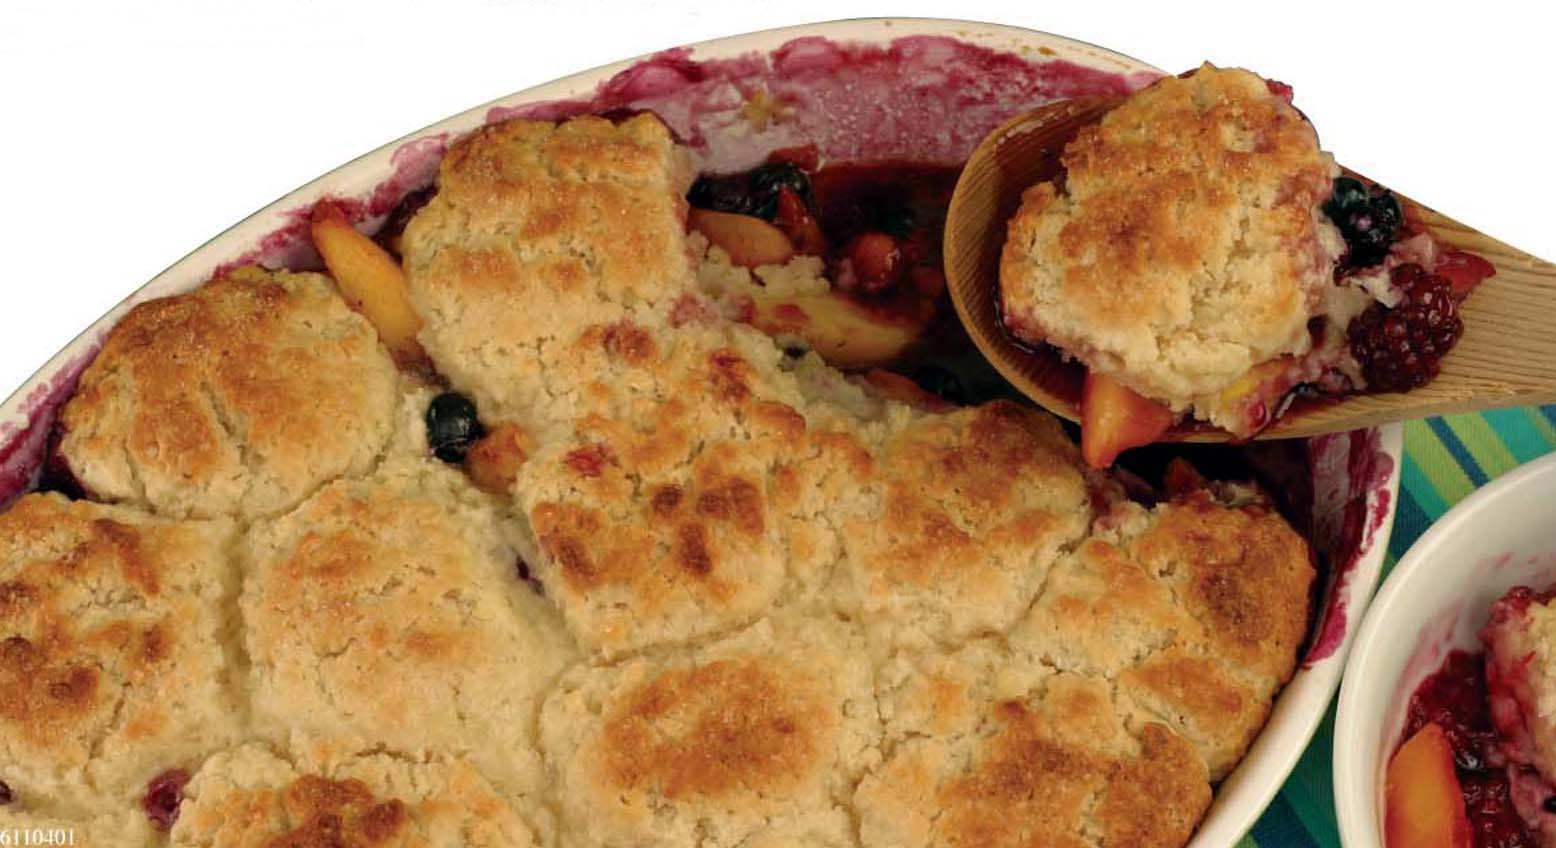 ** FOR USE WITH AP WEEKLY FEATURES **  Peach and Berry Almond Cobbler combines delectable summer fruits in a familiar dessert with a nontraditional bonus almond flavor in its dough, which includes almond paste. It's simple to make from scratch. (AP Photo/Andre Prost/Odense)